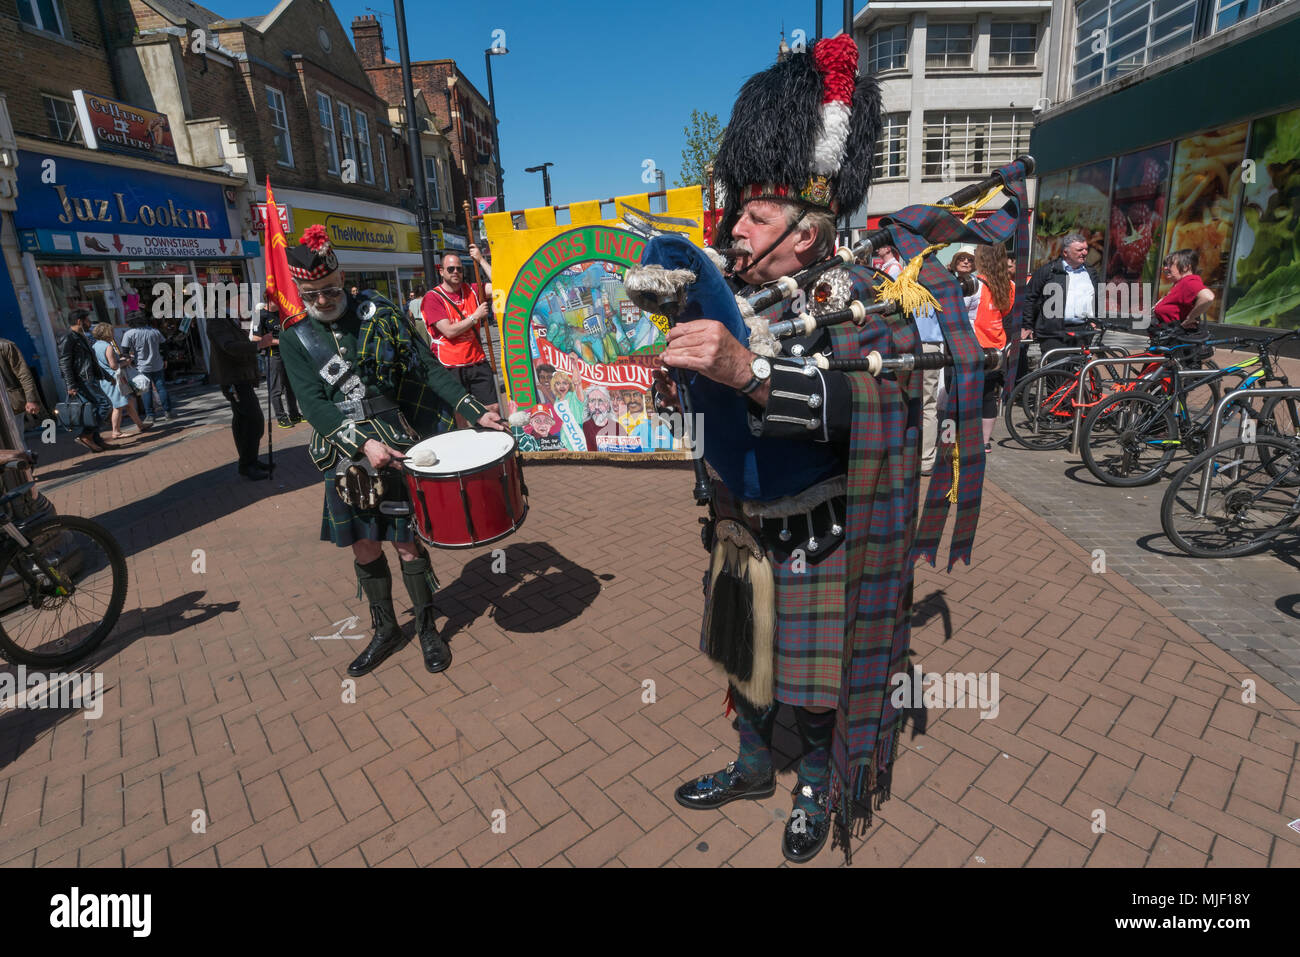 London, UK. 5th March 2018. A drummer and a piper lead trade unionists and other socialists on their march through Croydon town centre to a rally at Ruskin House in celebration of May Day, International Workers Day which is celebrated internationally on May 1st.  Unfortunately May Day is not a Bank Holiday in the UK. The marchers were lead through the main shopping street by a piper and drummer in full Scots dress, attracting the attention of shoppers and others on the busy street. I left the march before it reached Ruskin House where there was to be a rally with speakers including Ted Knight. - Stock Image